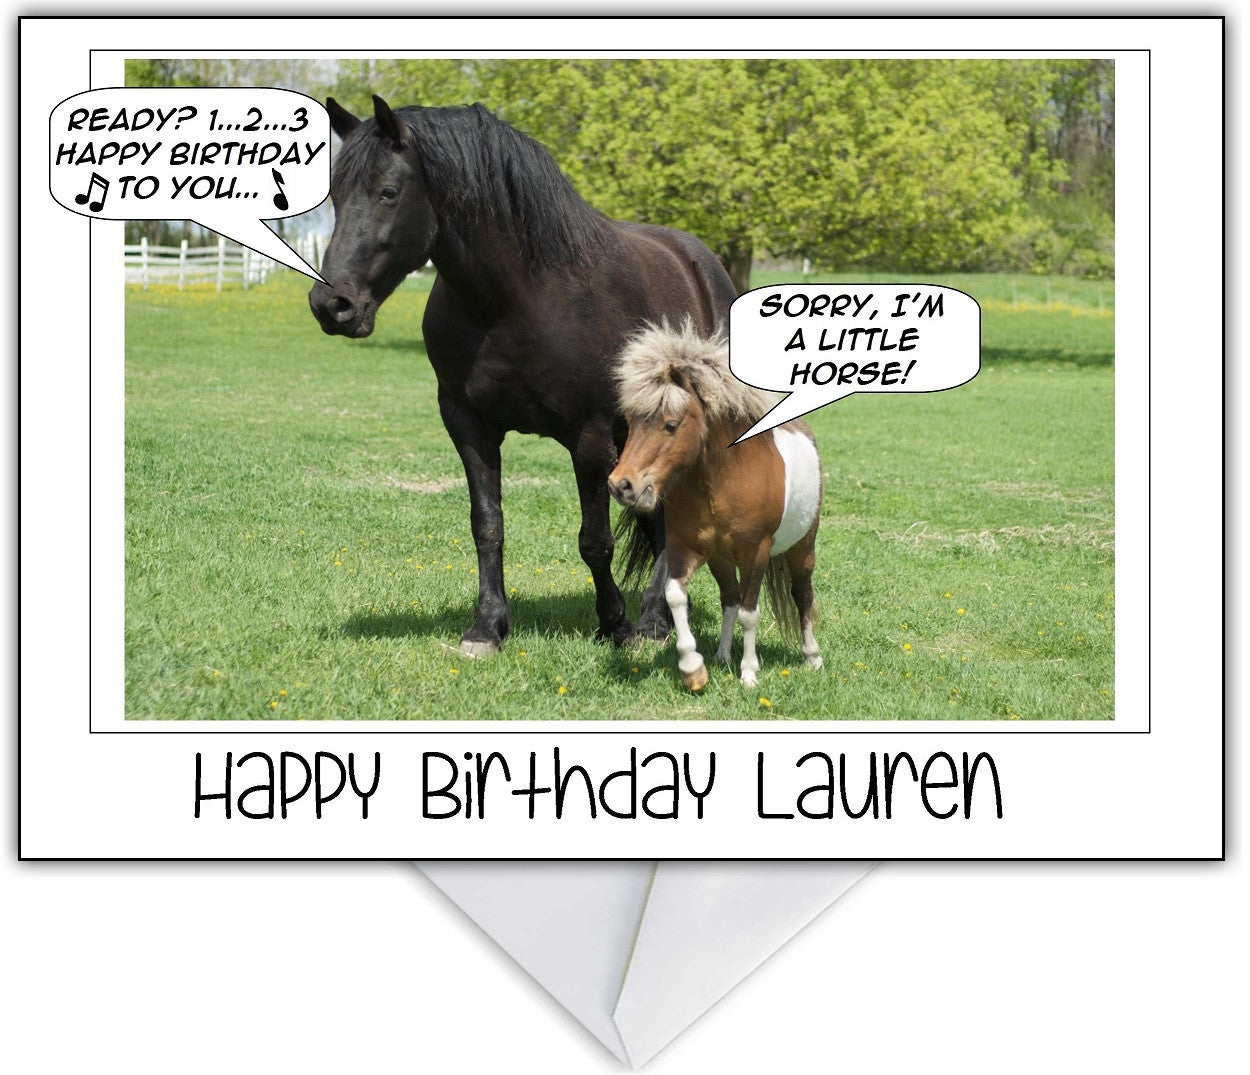 Photo humour birthday card sorry im a little horse that photo humour birthday card sorry im a little horse bookmarktalkfo Images